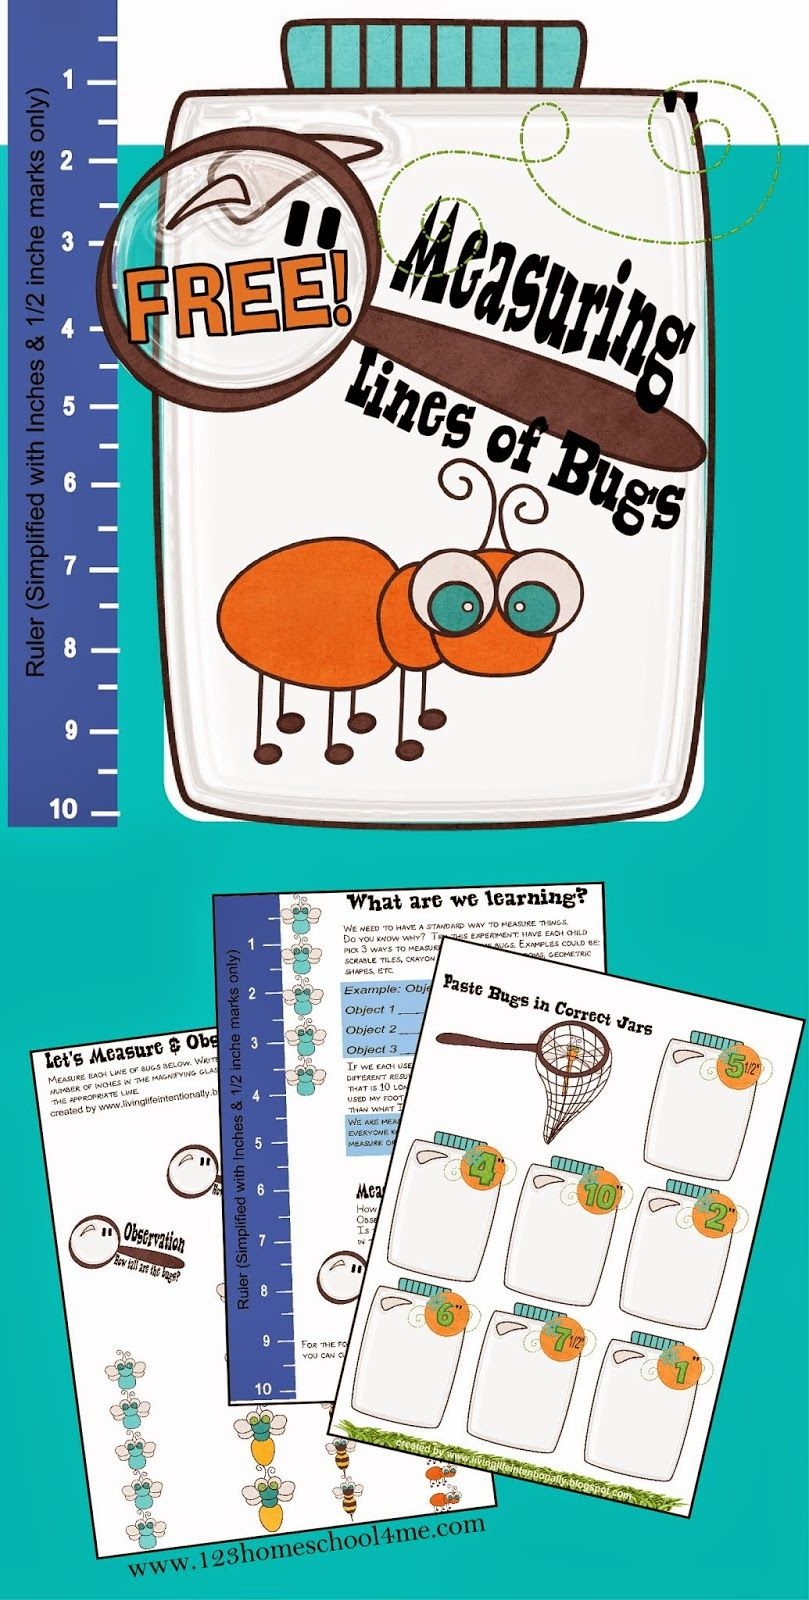 FREE Measuring Bugs | Pinterest | Math worksheets, Worksheets and ...